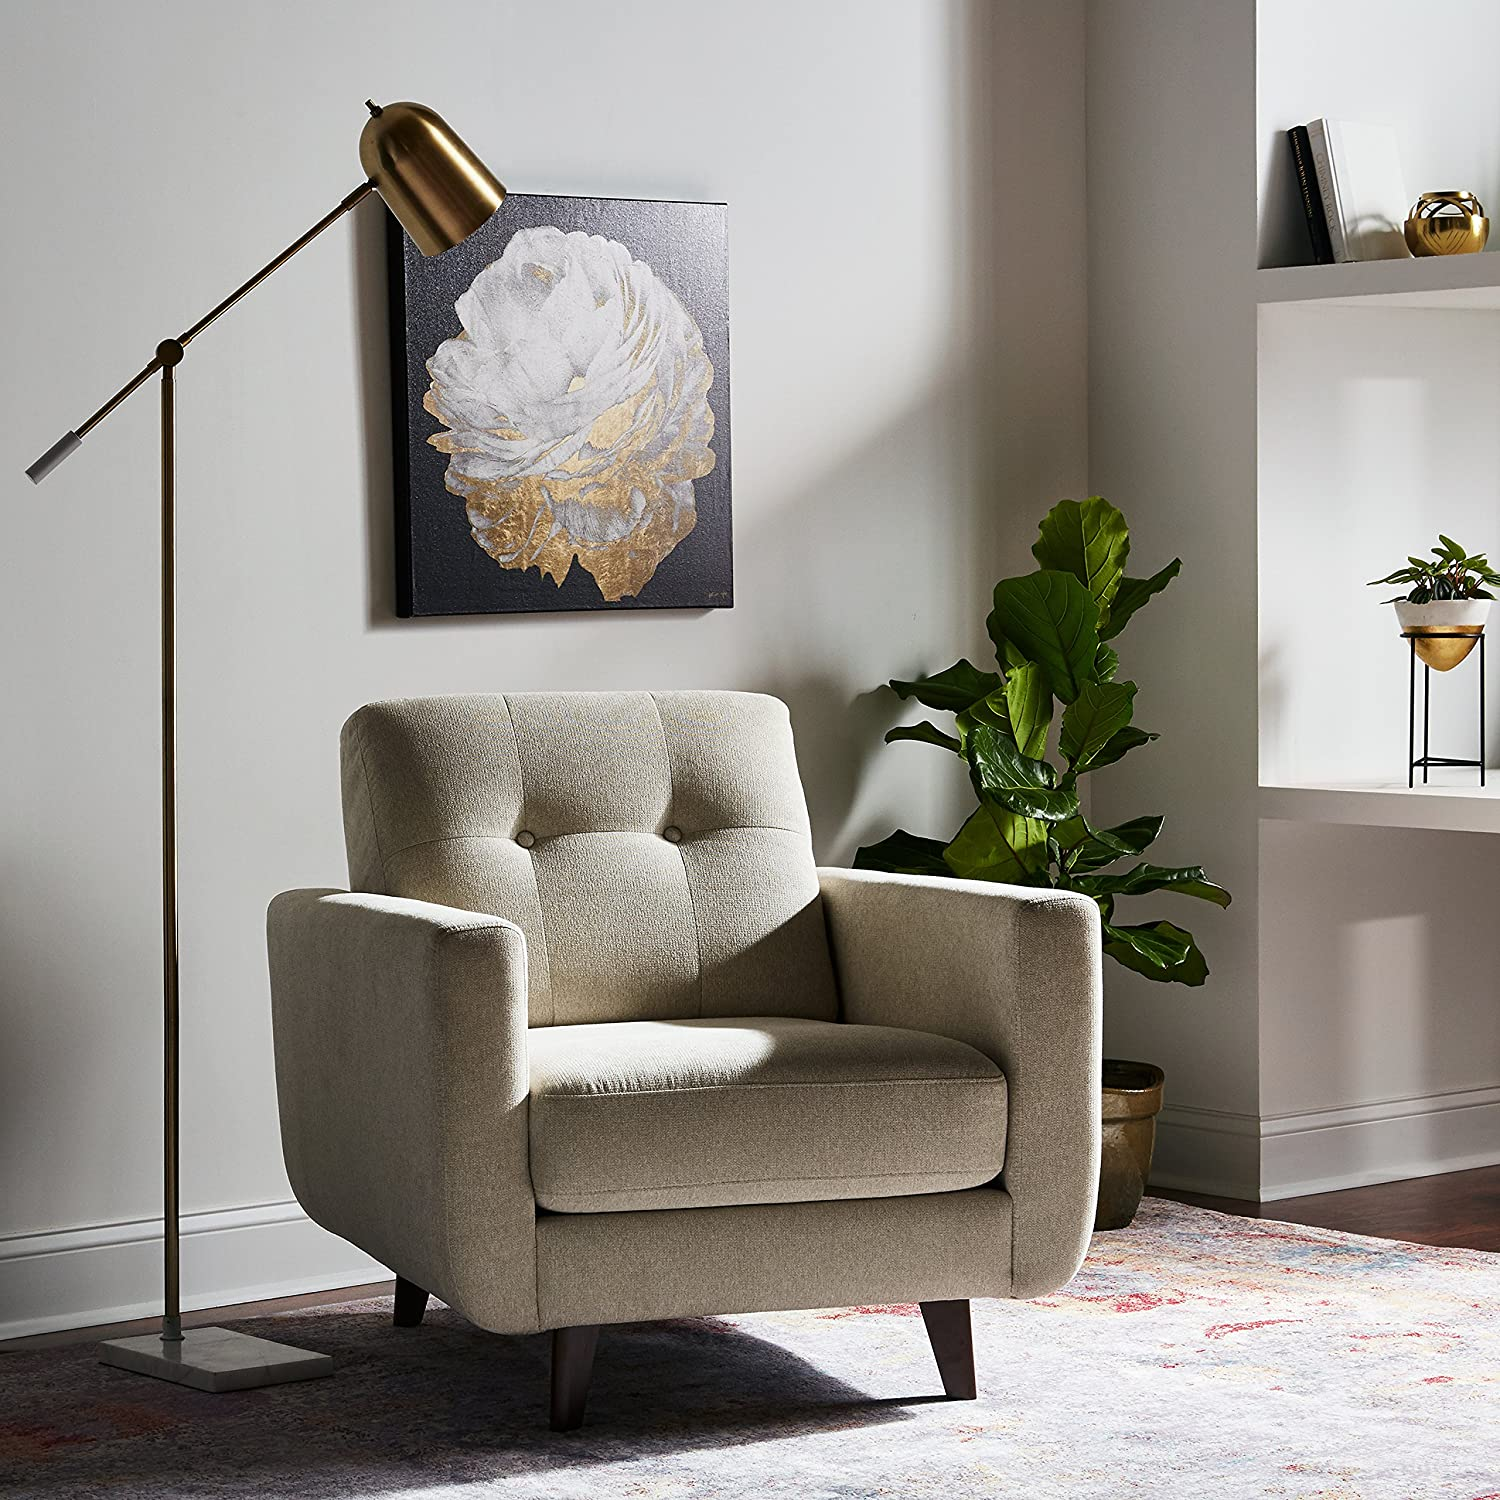 5 Most Comfortable Armchairs Reviewed